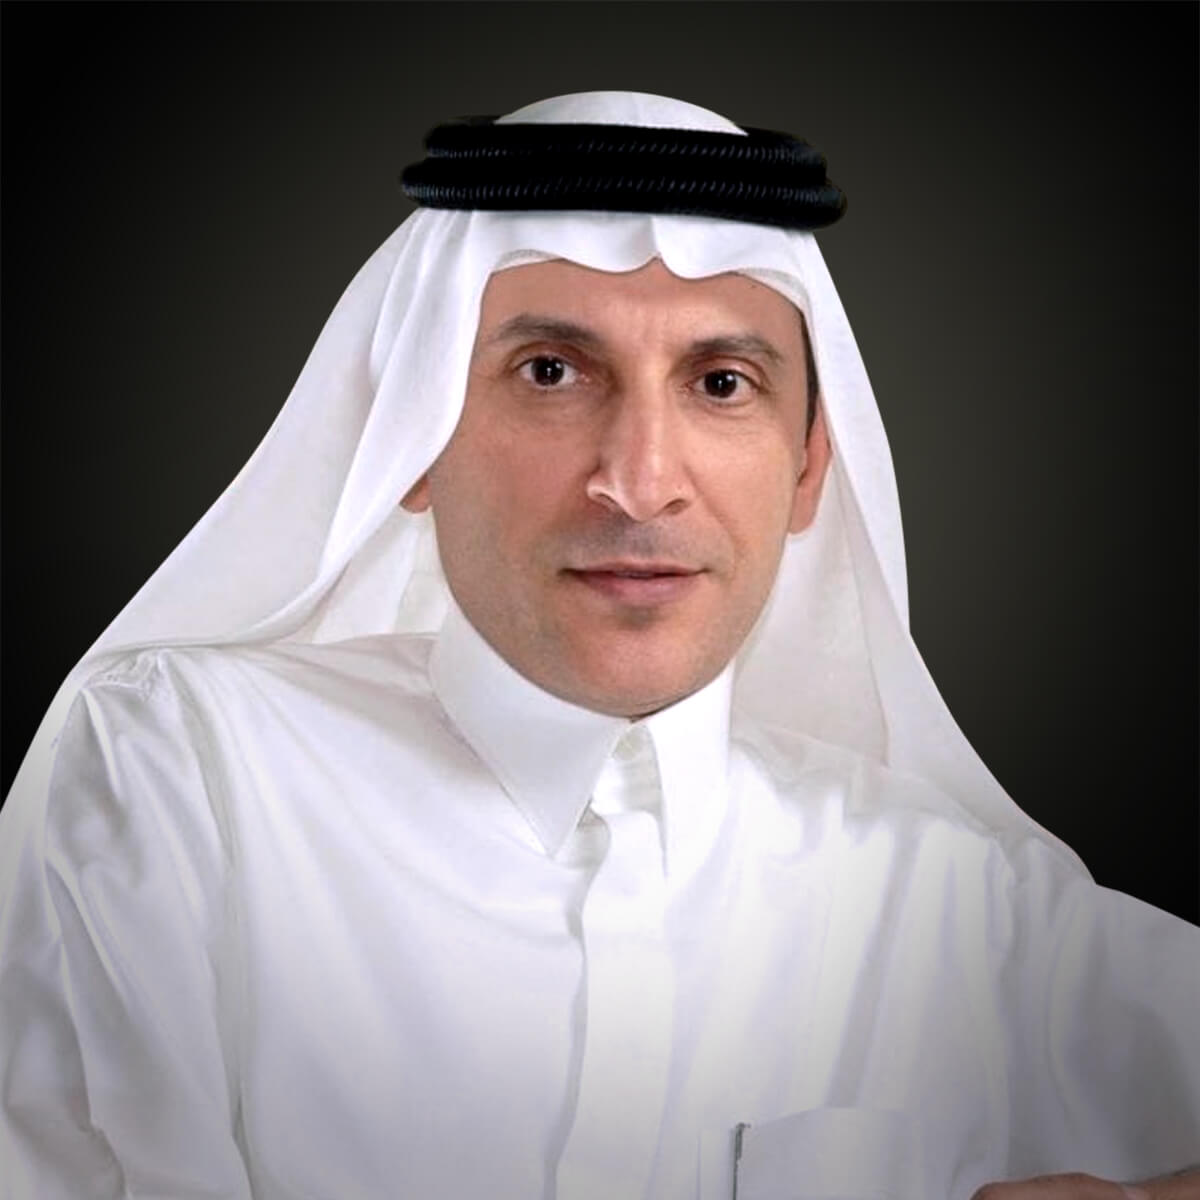 Qataris on Forbes' list of most powerful CEOs